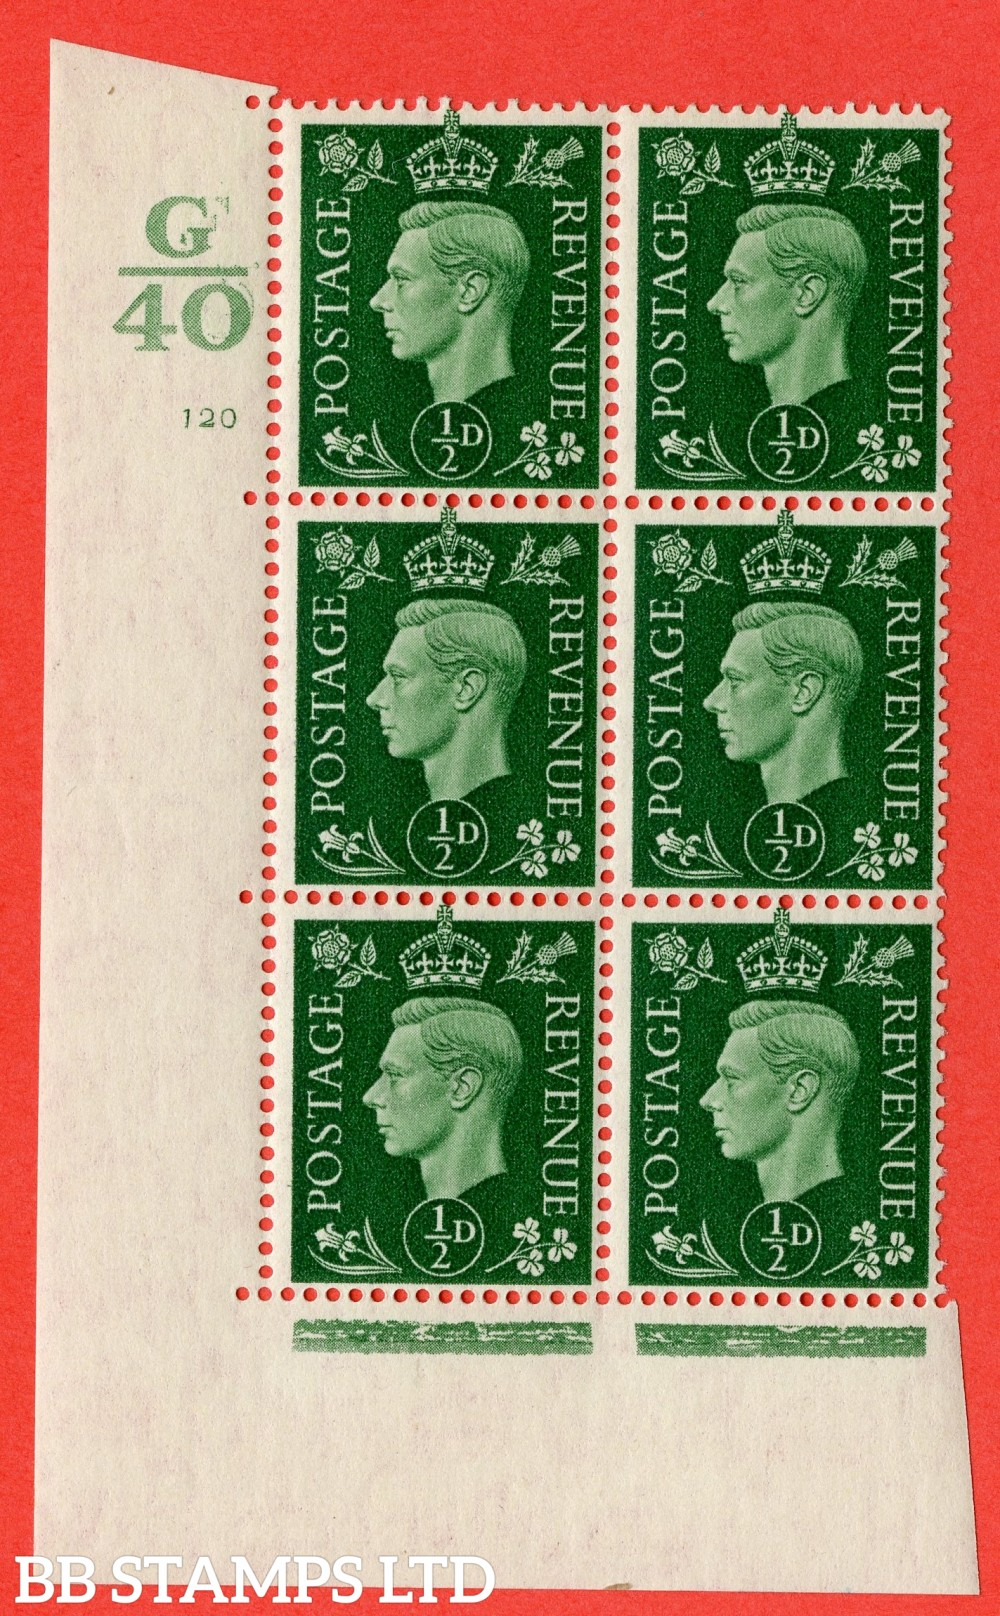 "SG. 462. Q1. ½d Green. A superb UNMOUNTED MINT "" Control G40 cylinder 120 no dot "" block of 6 with perf type 5 E/I with marginal rule."